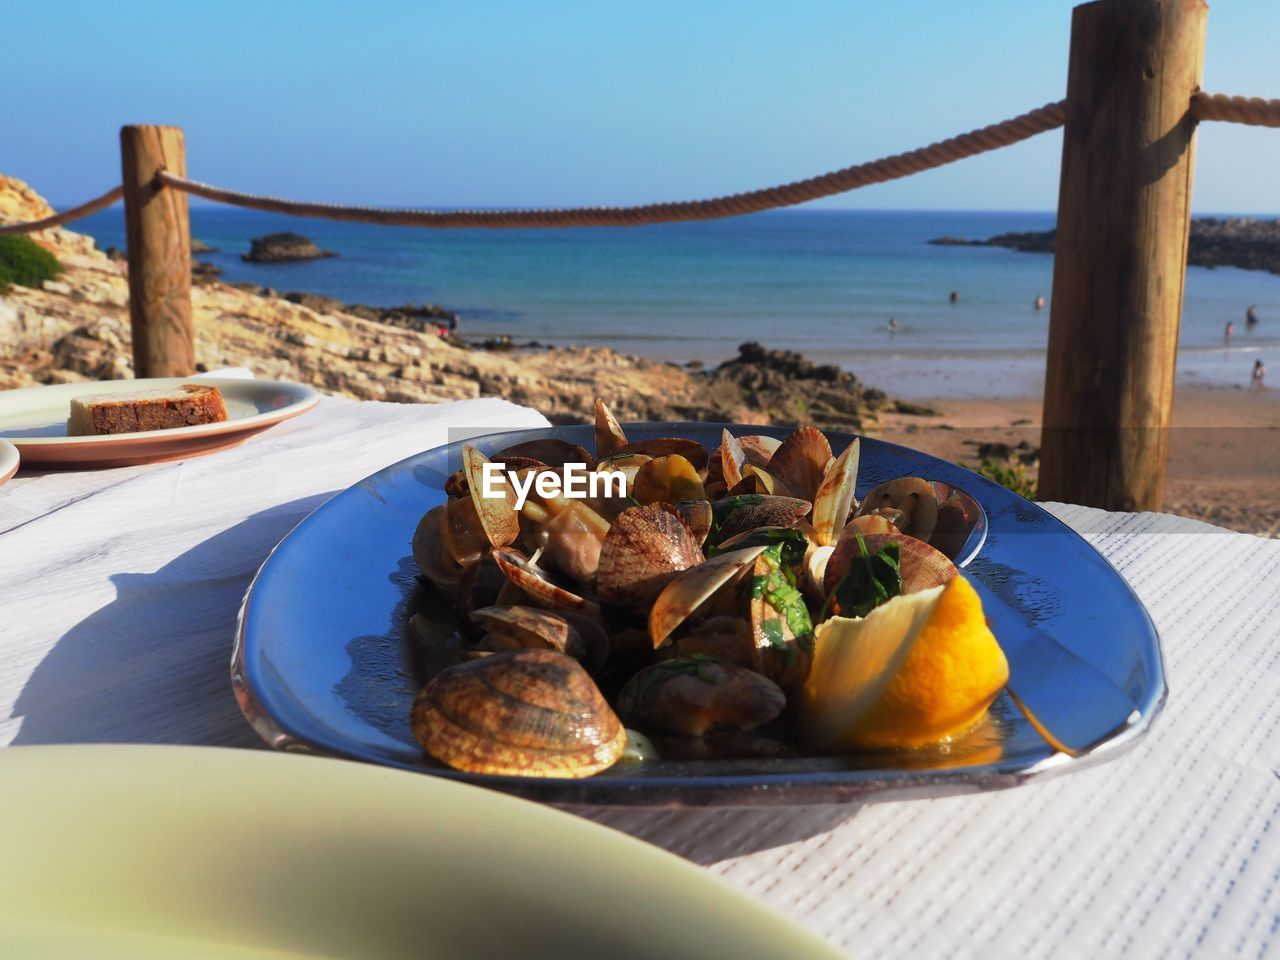 CLOSE-UP OF BREAKFAST ON TABLE BY SEA